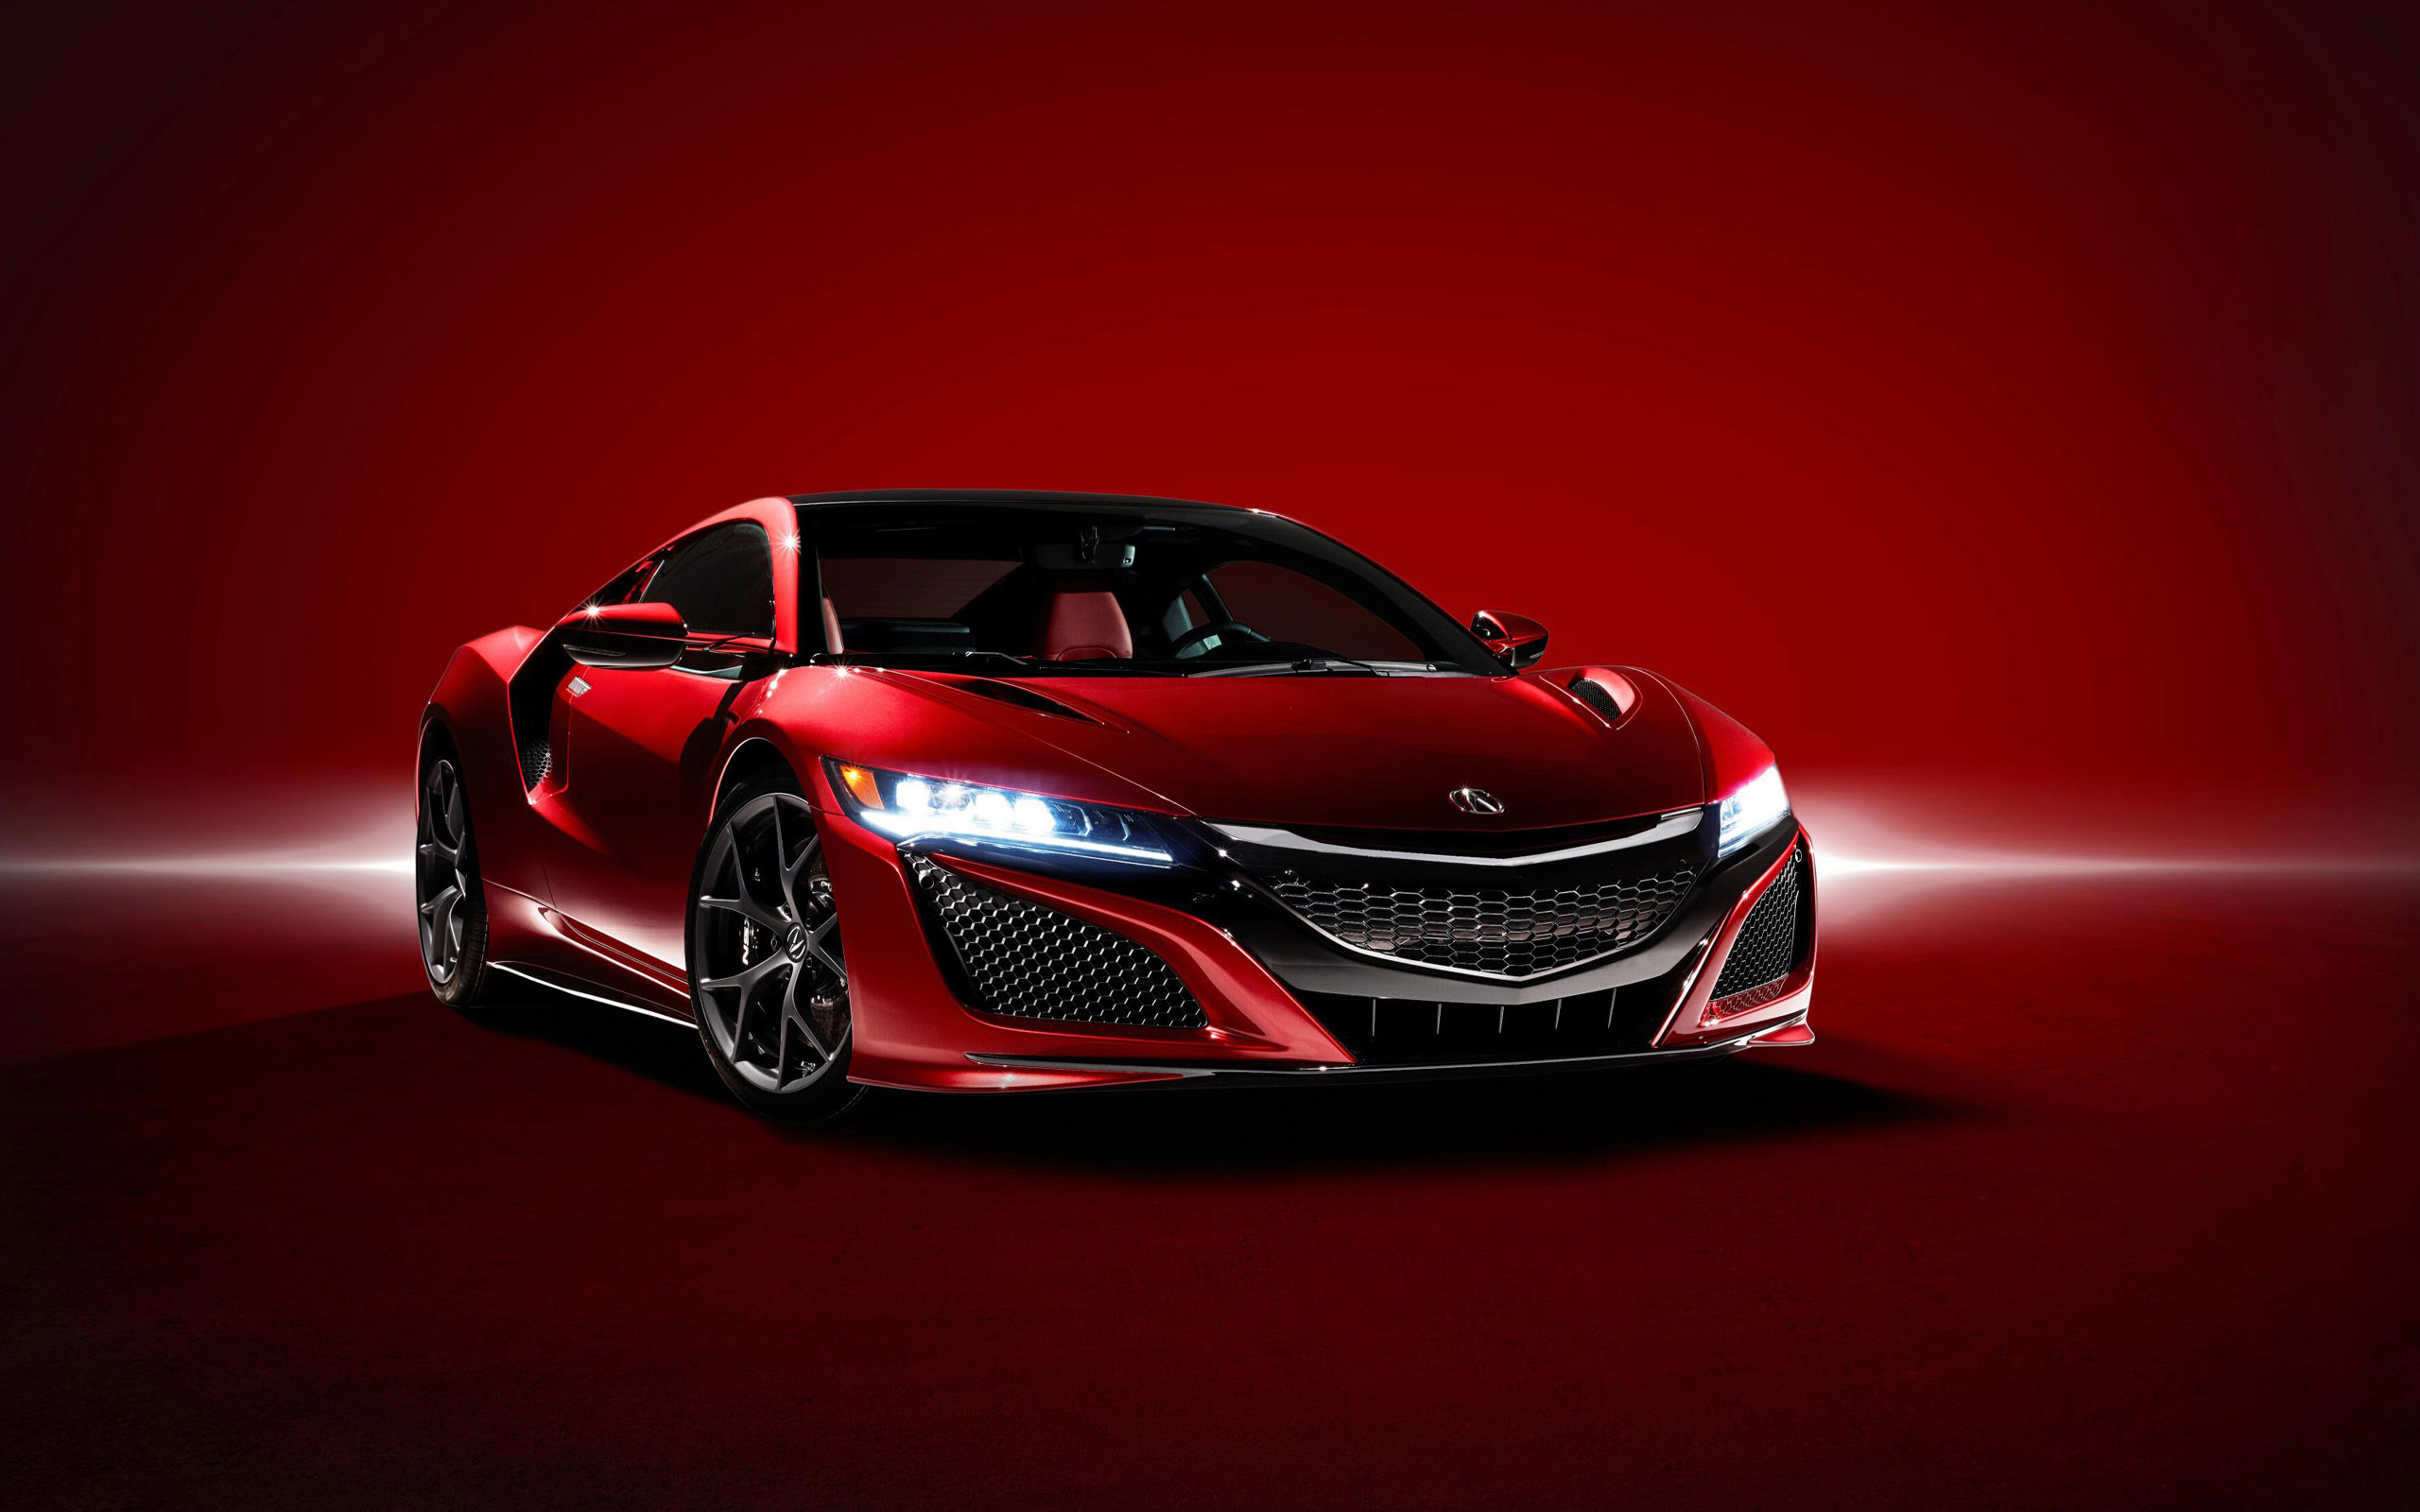 2016 Acura Nsx Supercar Wallpaper Hd Car Wallpapers Id